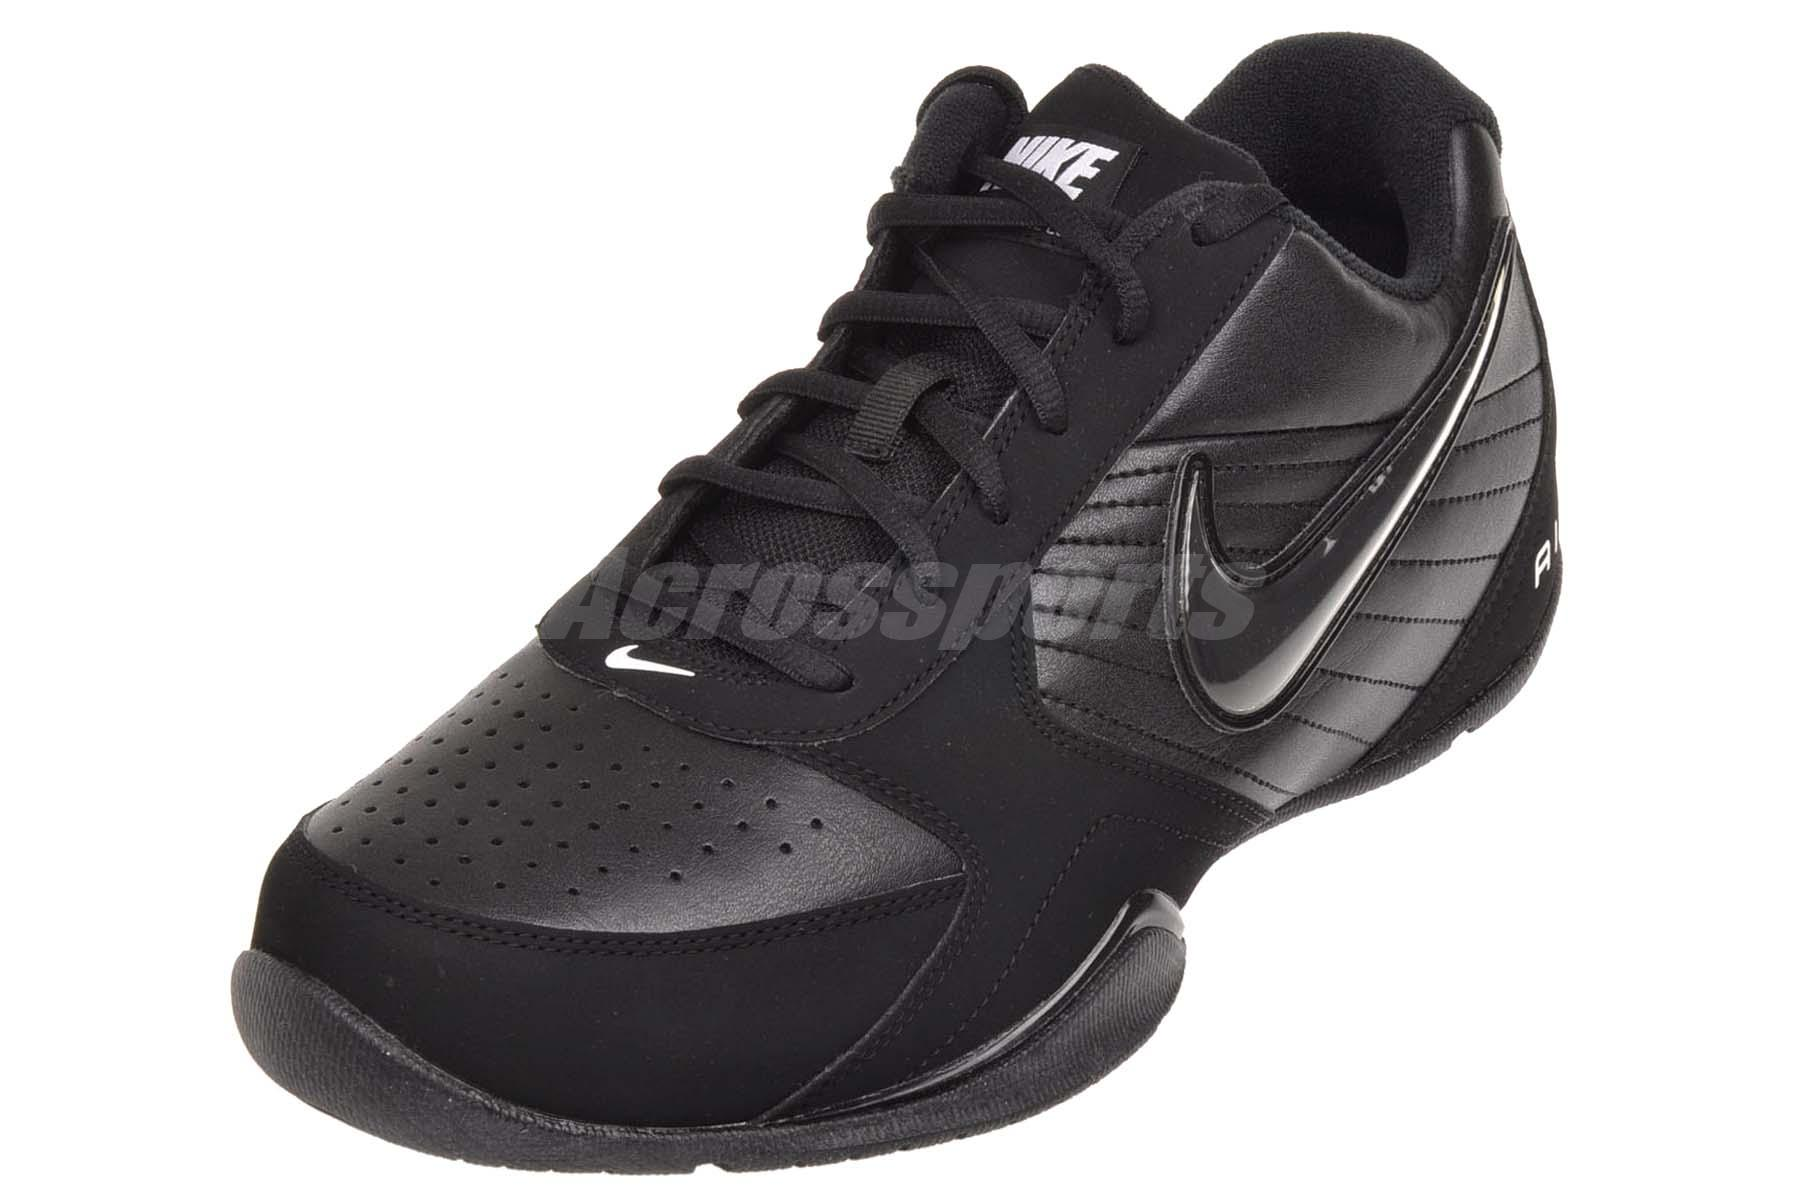 8b6362db9a74 Nike Air Baseline Low Mens Basketball Shoes Black 386240-001